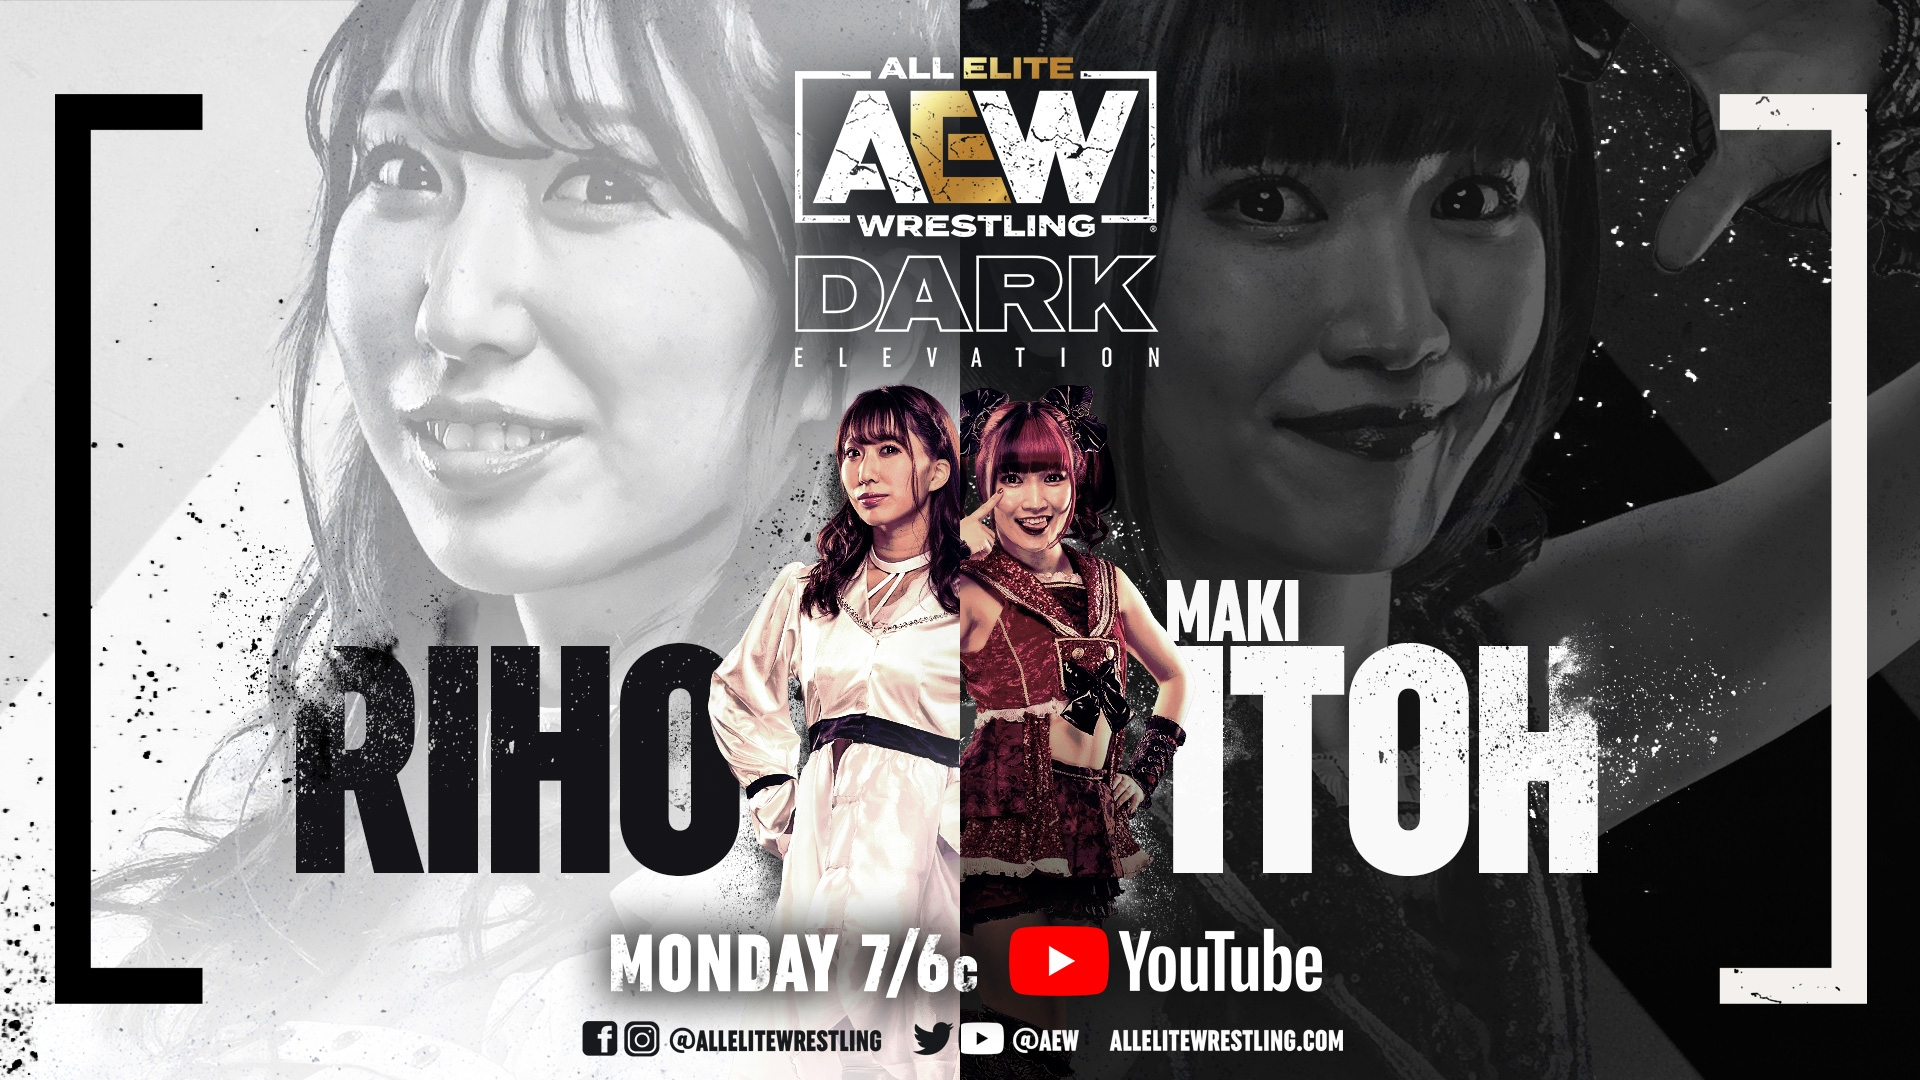 AEW Dark: Elevation Results (3/15): Riho Vs. Maki Itoh, Paul Wight Commentary Debut